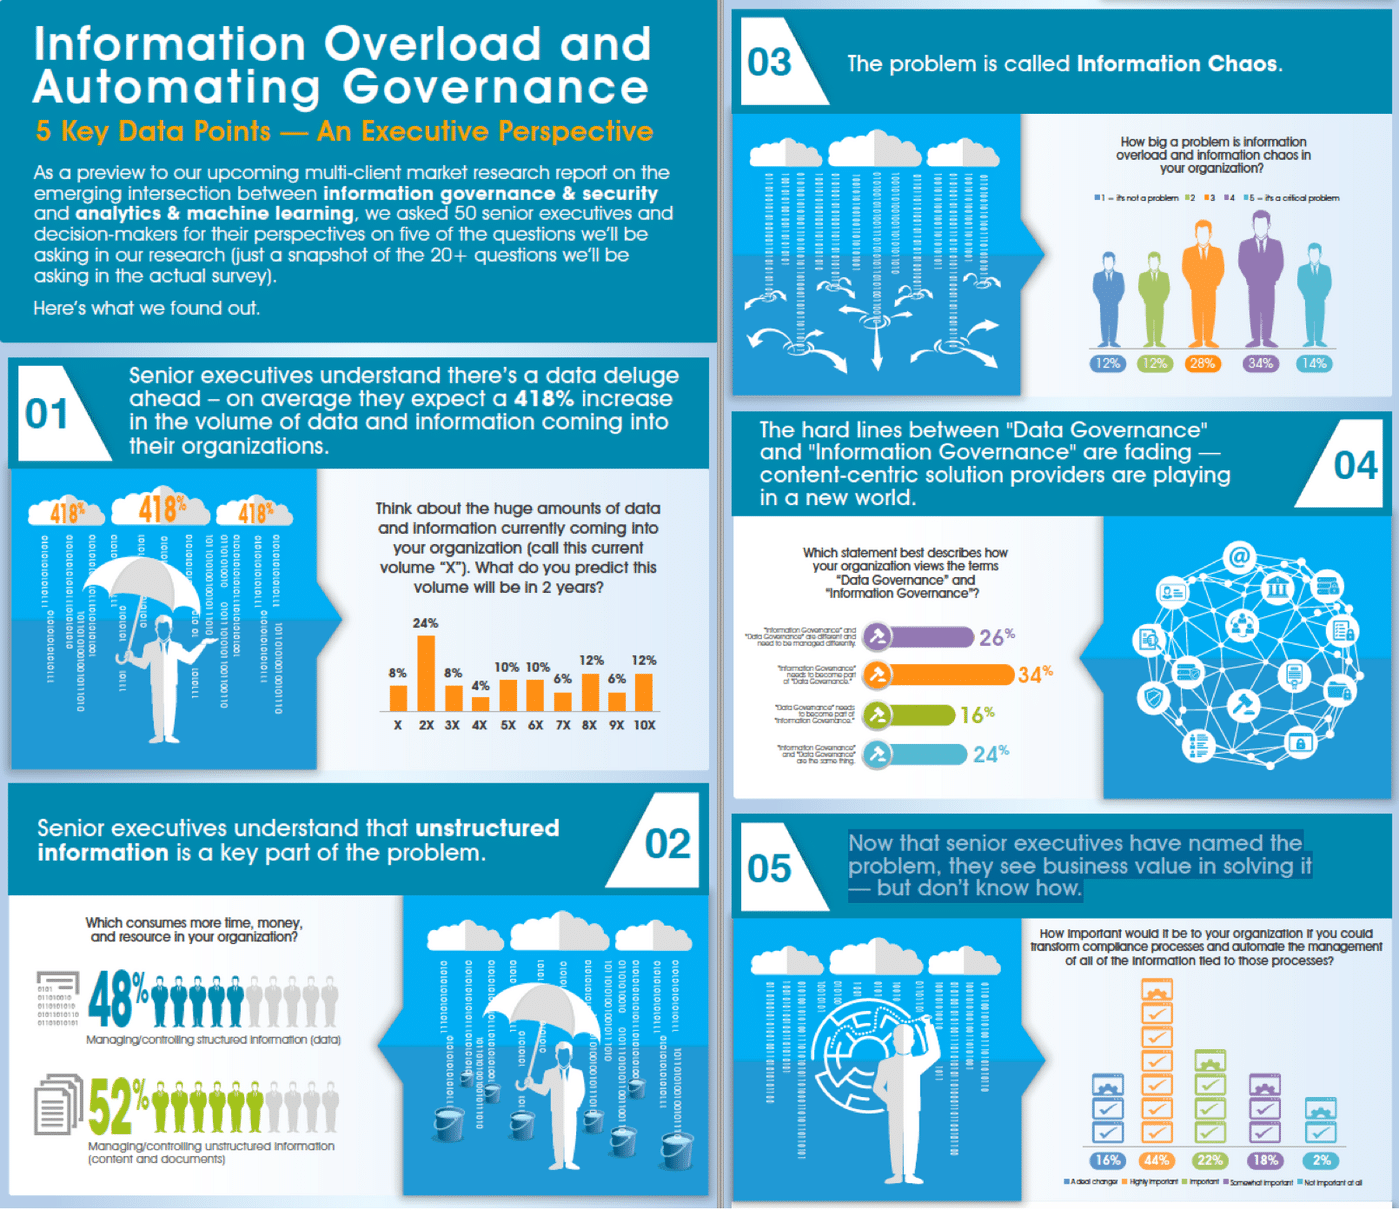 Preview -5 Things You Need to Know About Information Overload and Automating Governance